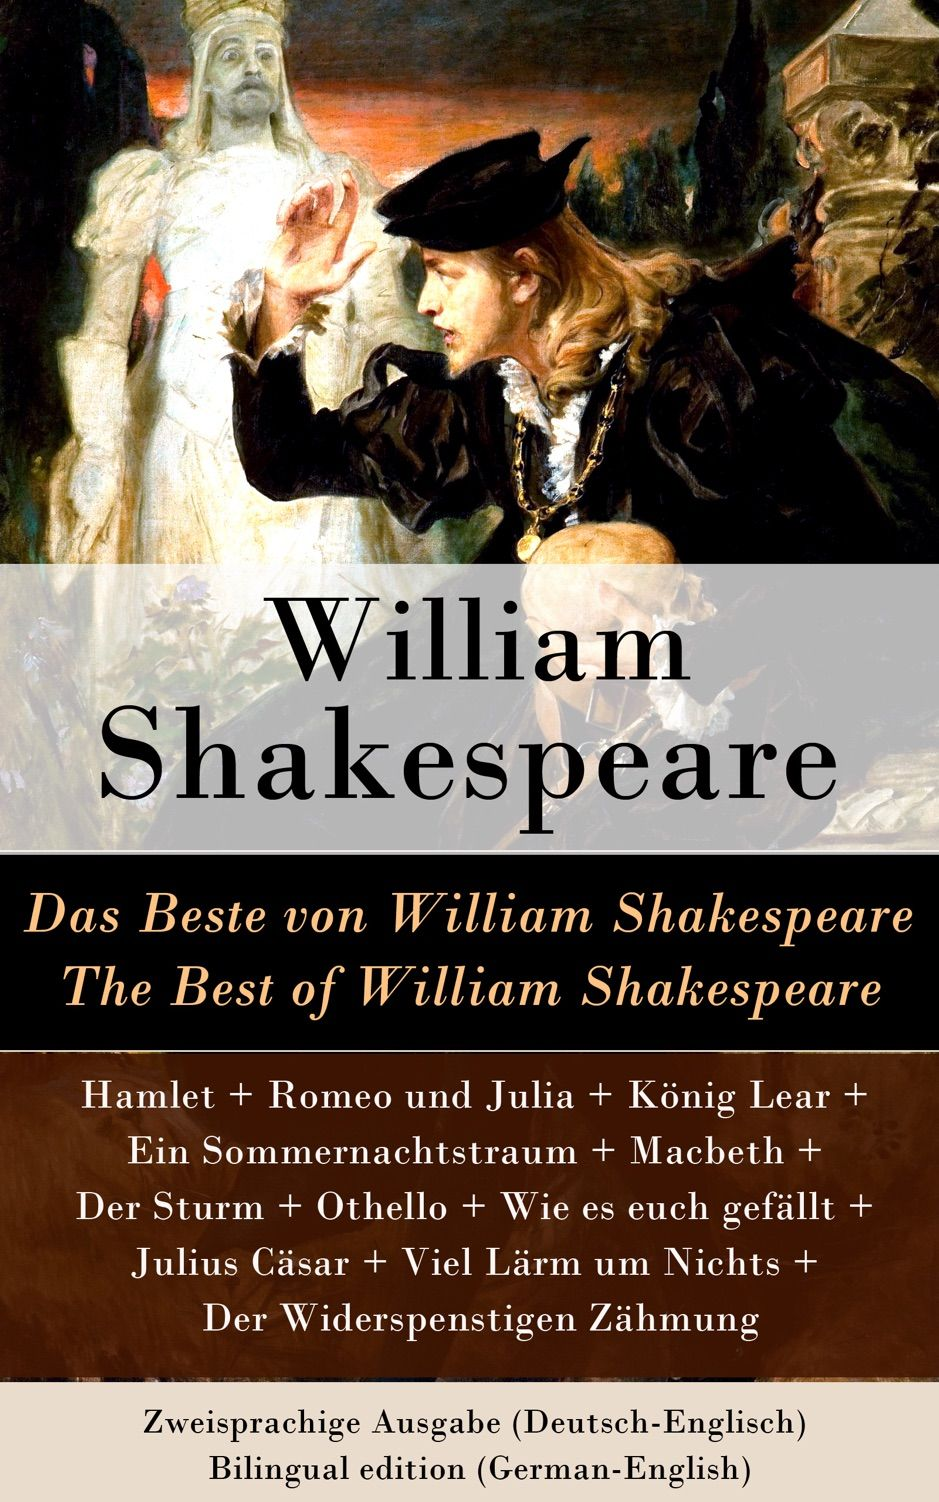 A Zdas Beste Von William Shakespeare The Best Of William Shakespeare Zweisprac Ad Zweisprachige Shakespeare Ausgabe Movie Posters Movies Poster